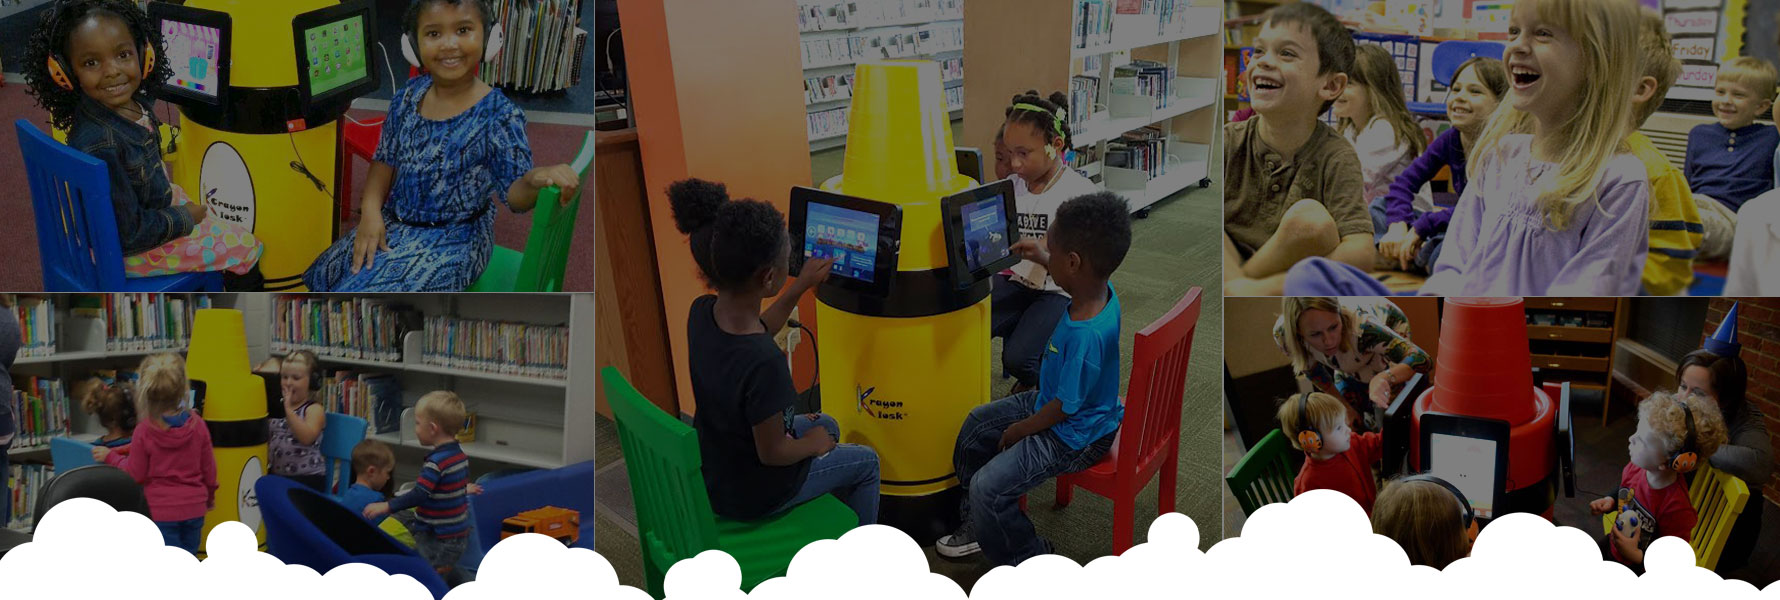 Aridan Books Offers the best e- learning experience and content for kids at Libraries, Schools, Institutions & Places of Business